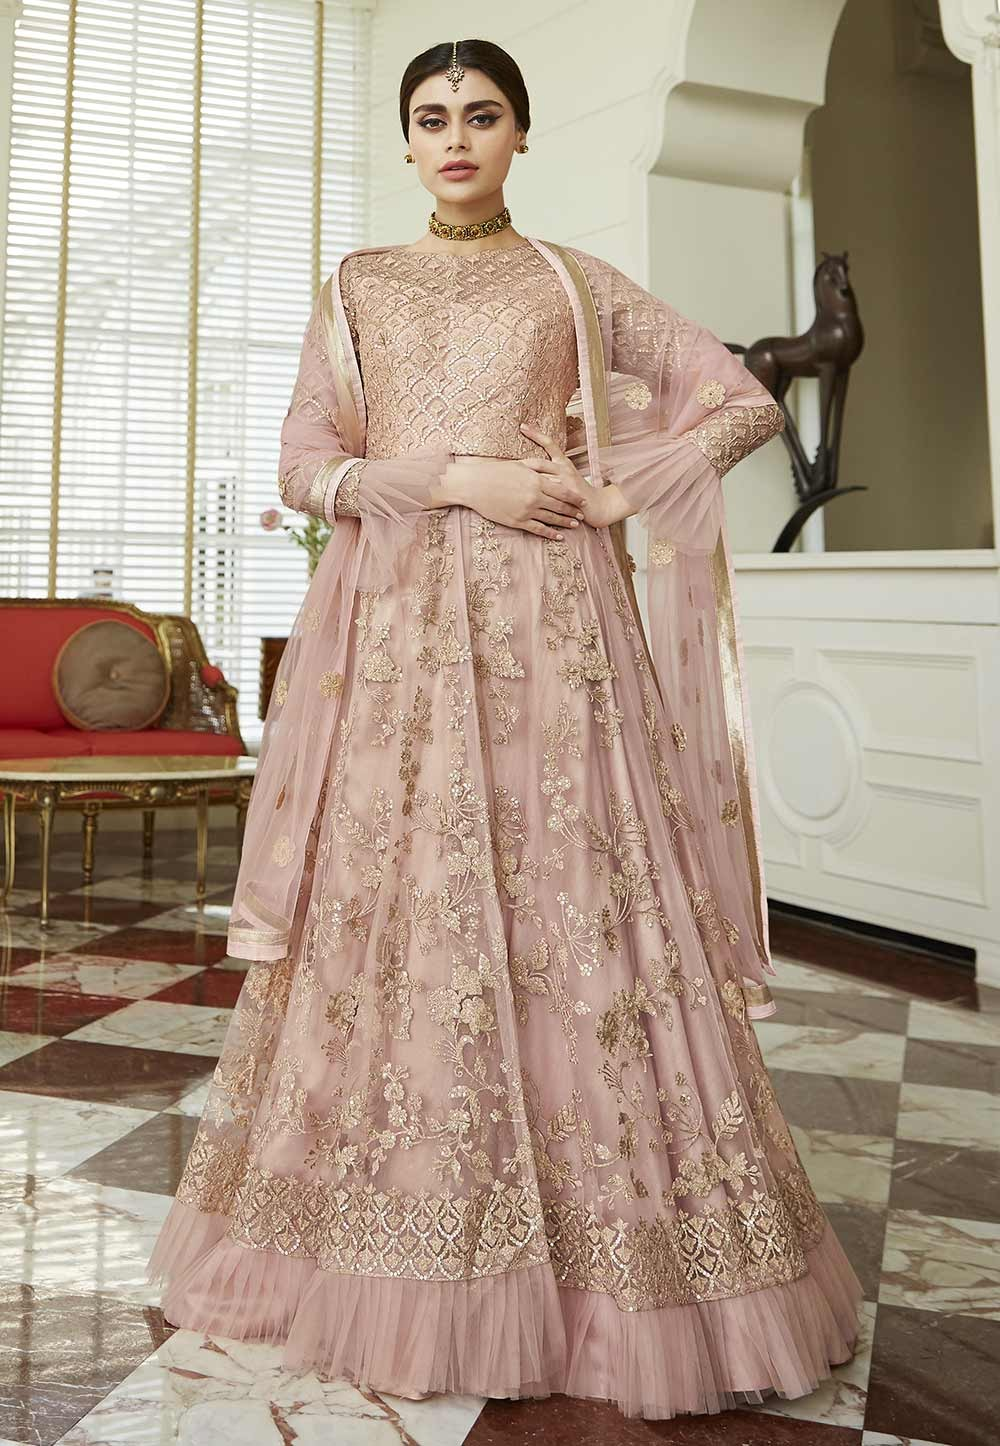 Party Wear Salwar Suit in Pink,Peach Colour.